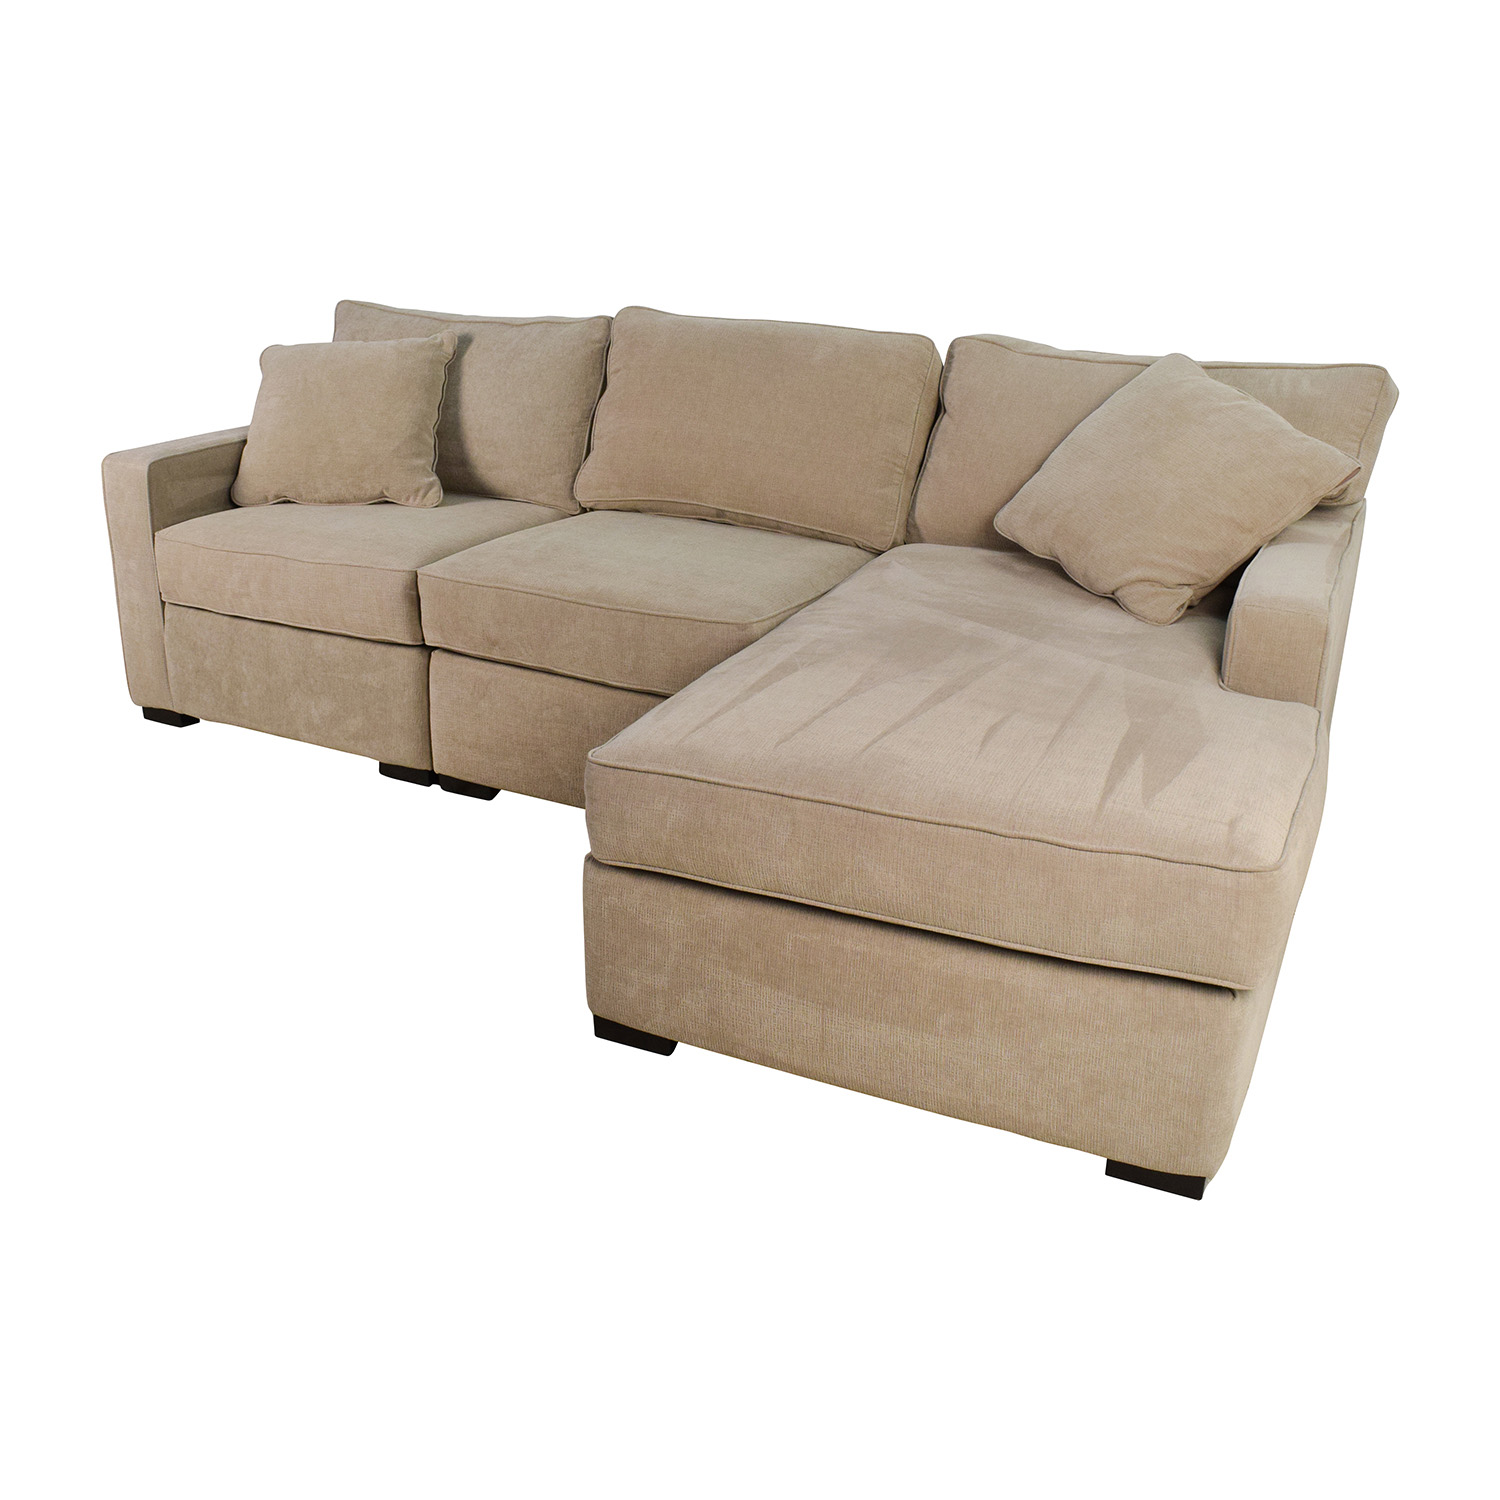 37 off macy 39 s radley 3 piece fabric chaise sectional for 3 piece sectional with chaise